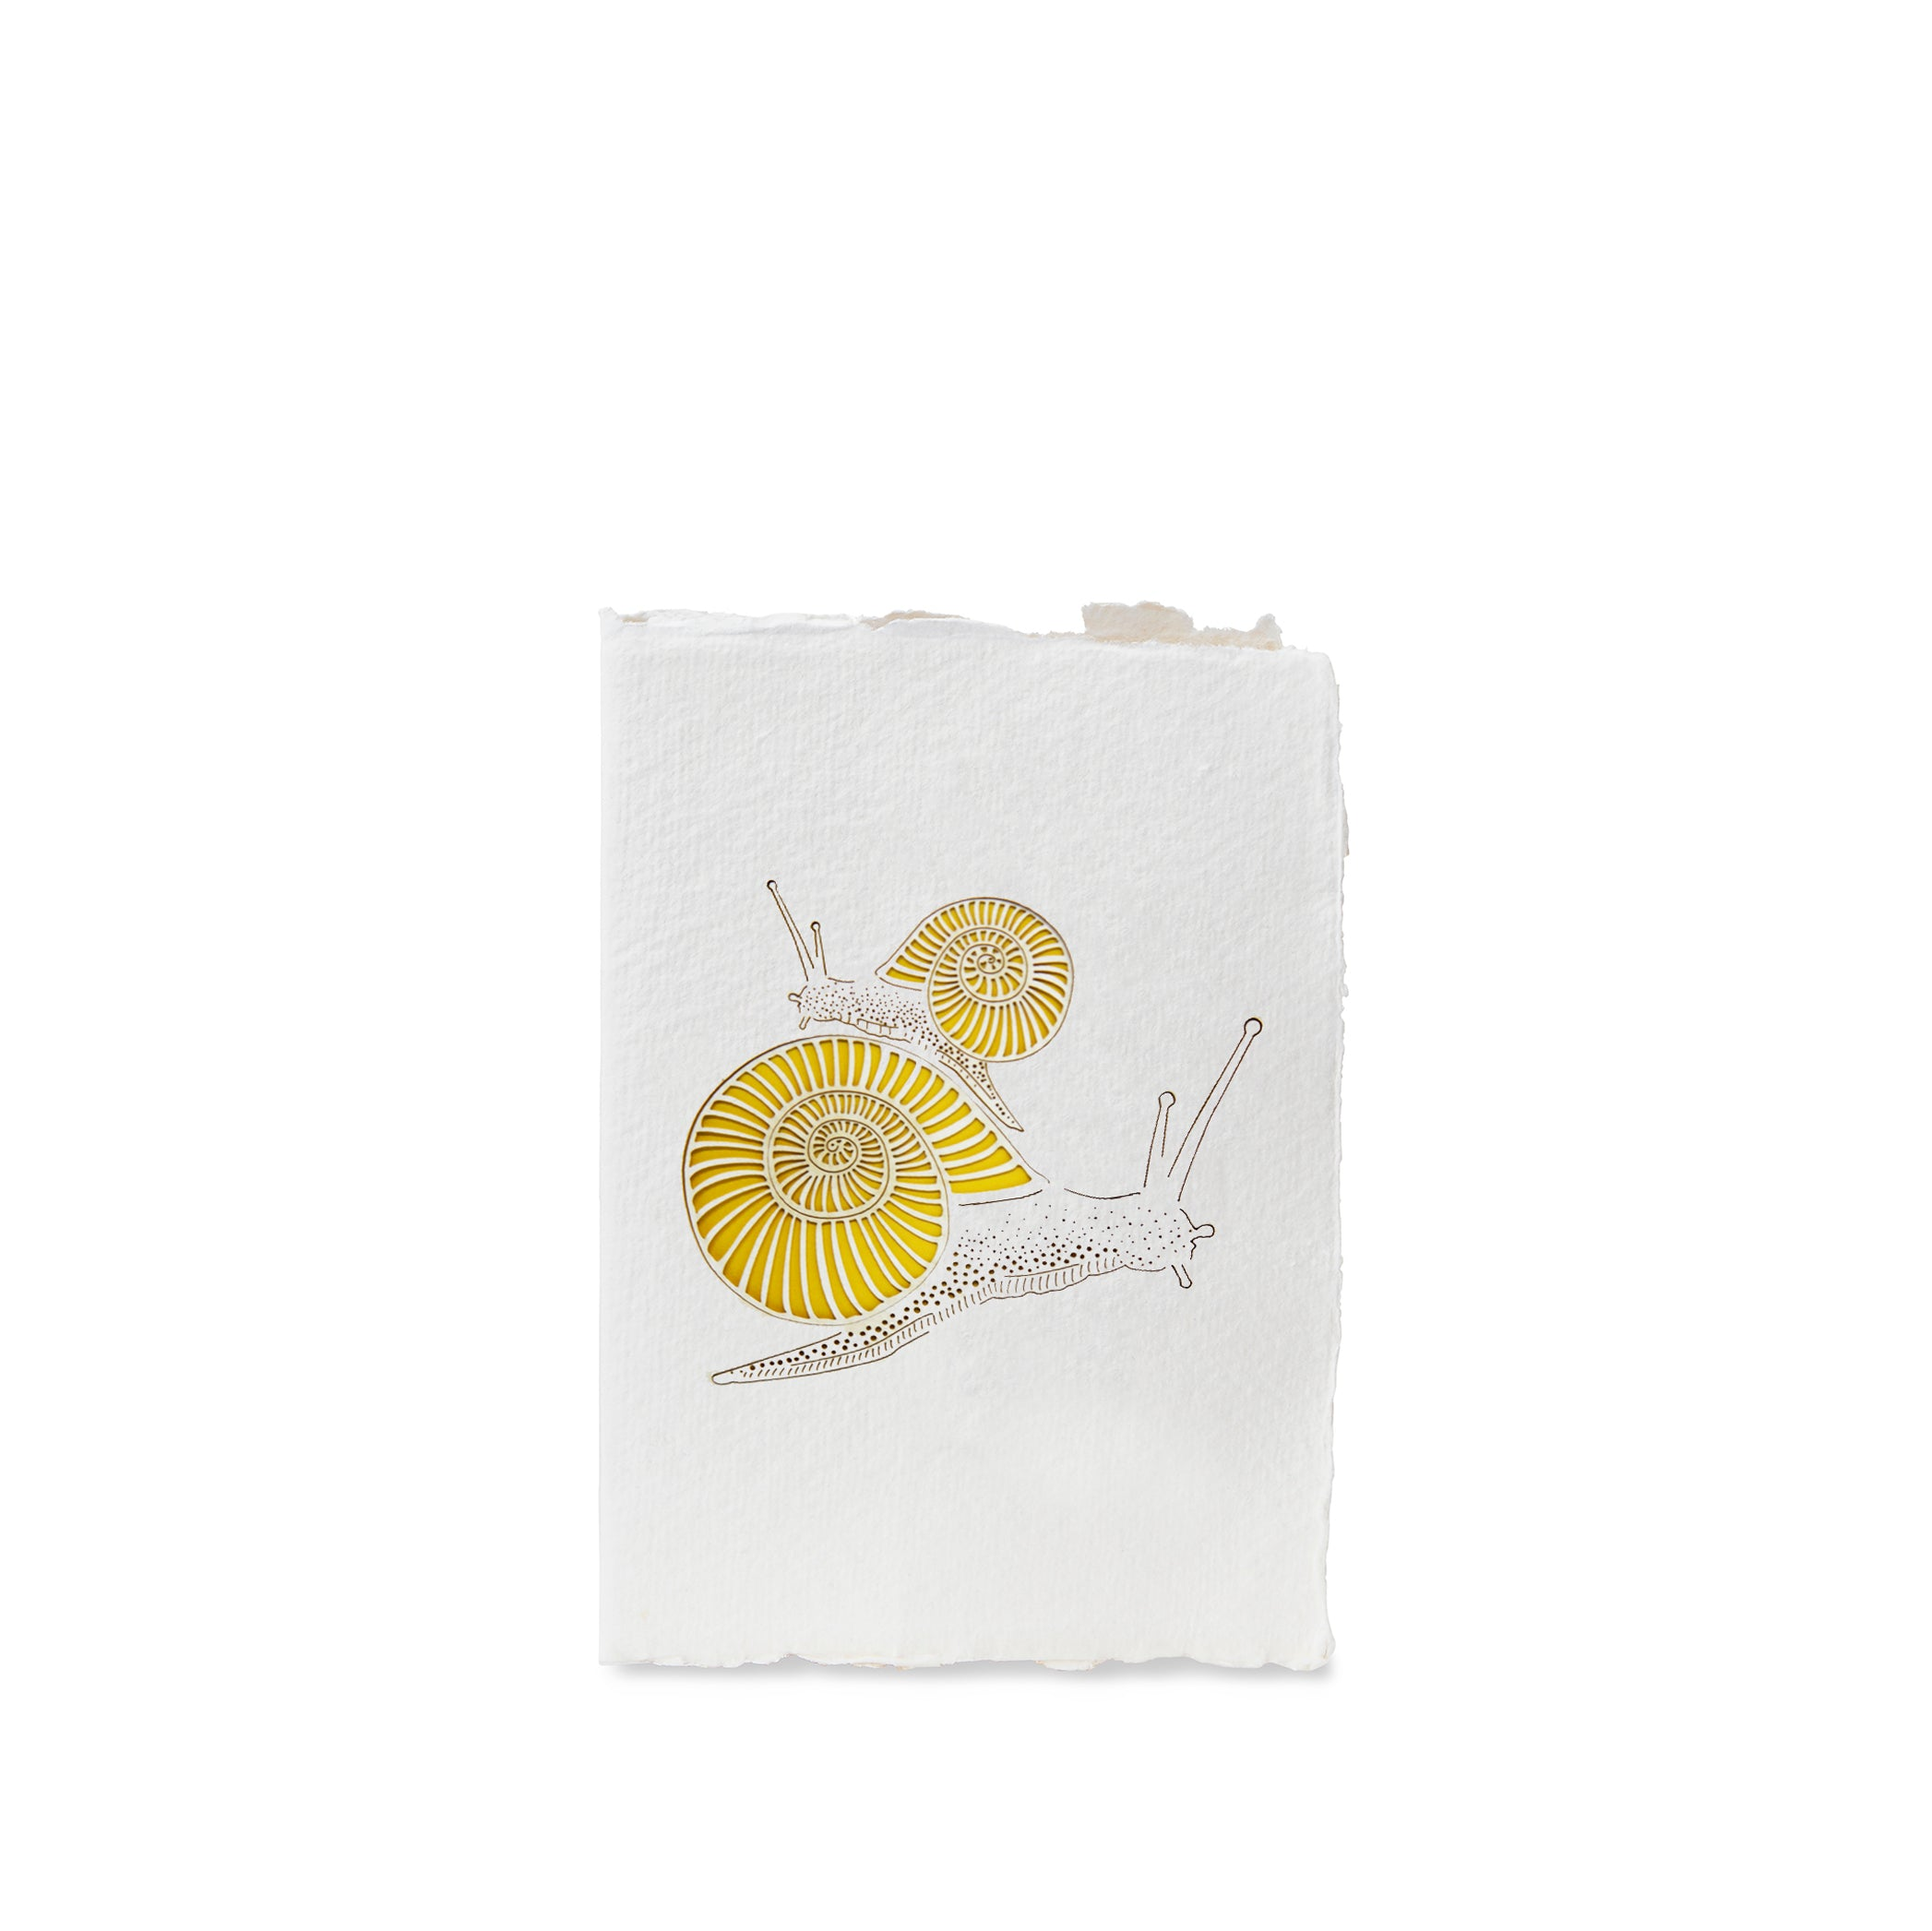 Handmade Paper Greeting Card with Snail